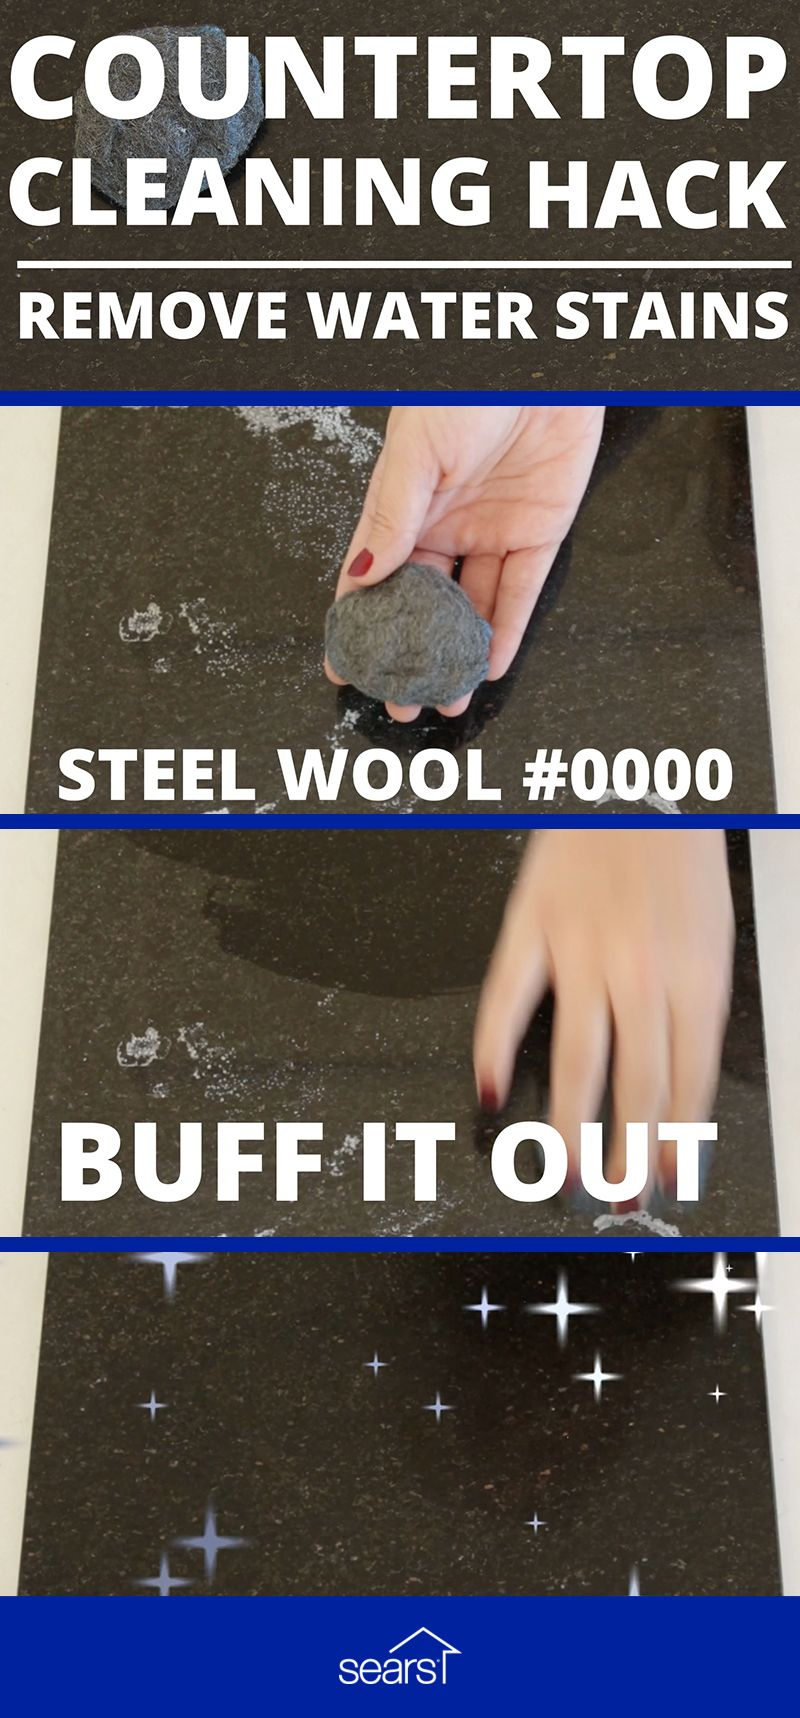 Remove Hard Water Stains And Rings From Quartz Using Steel Wool We Ll Try 0000 To Buff Out Spots On Countertops